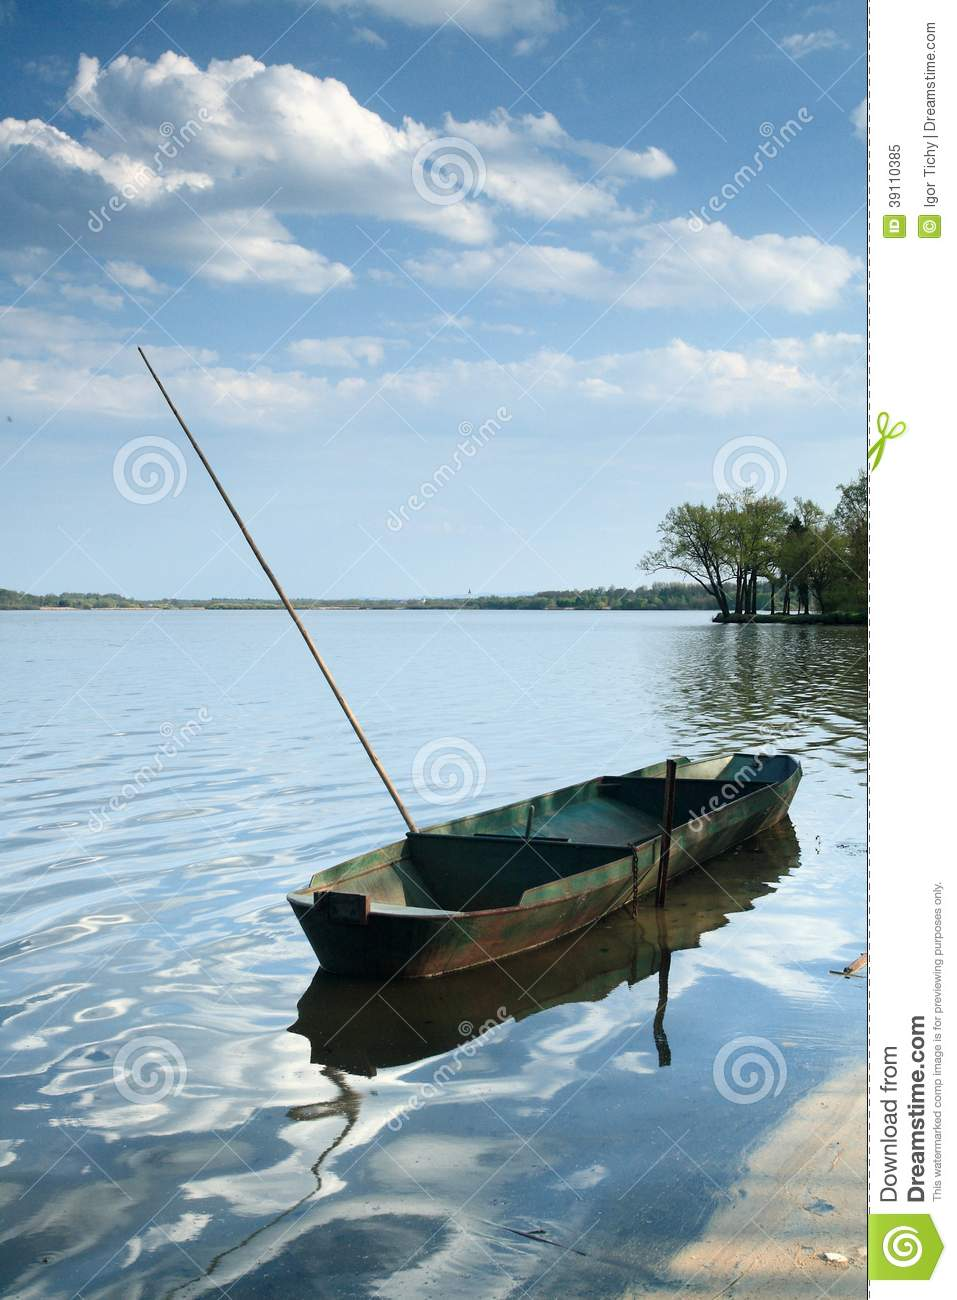 Fishing boat on the pond rozmberk stock photo image for Pond fishing boats